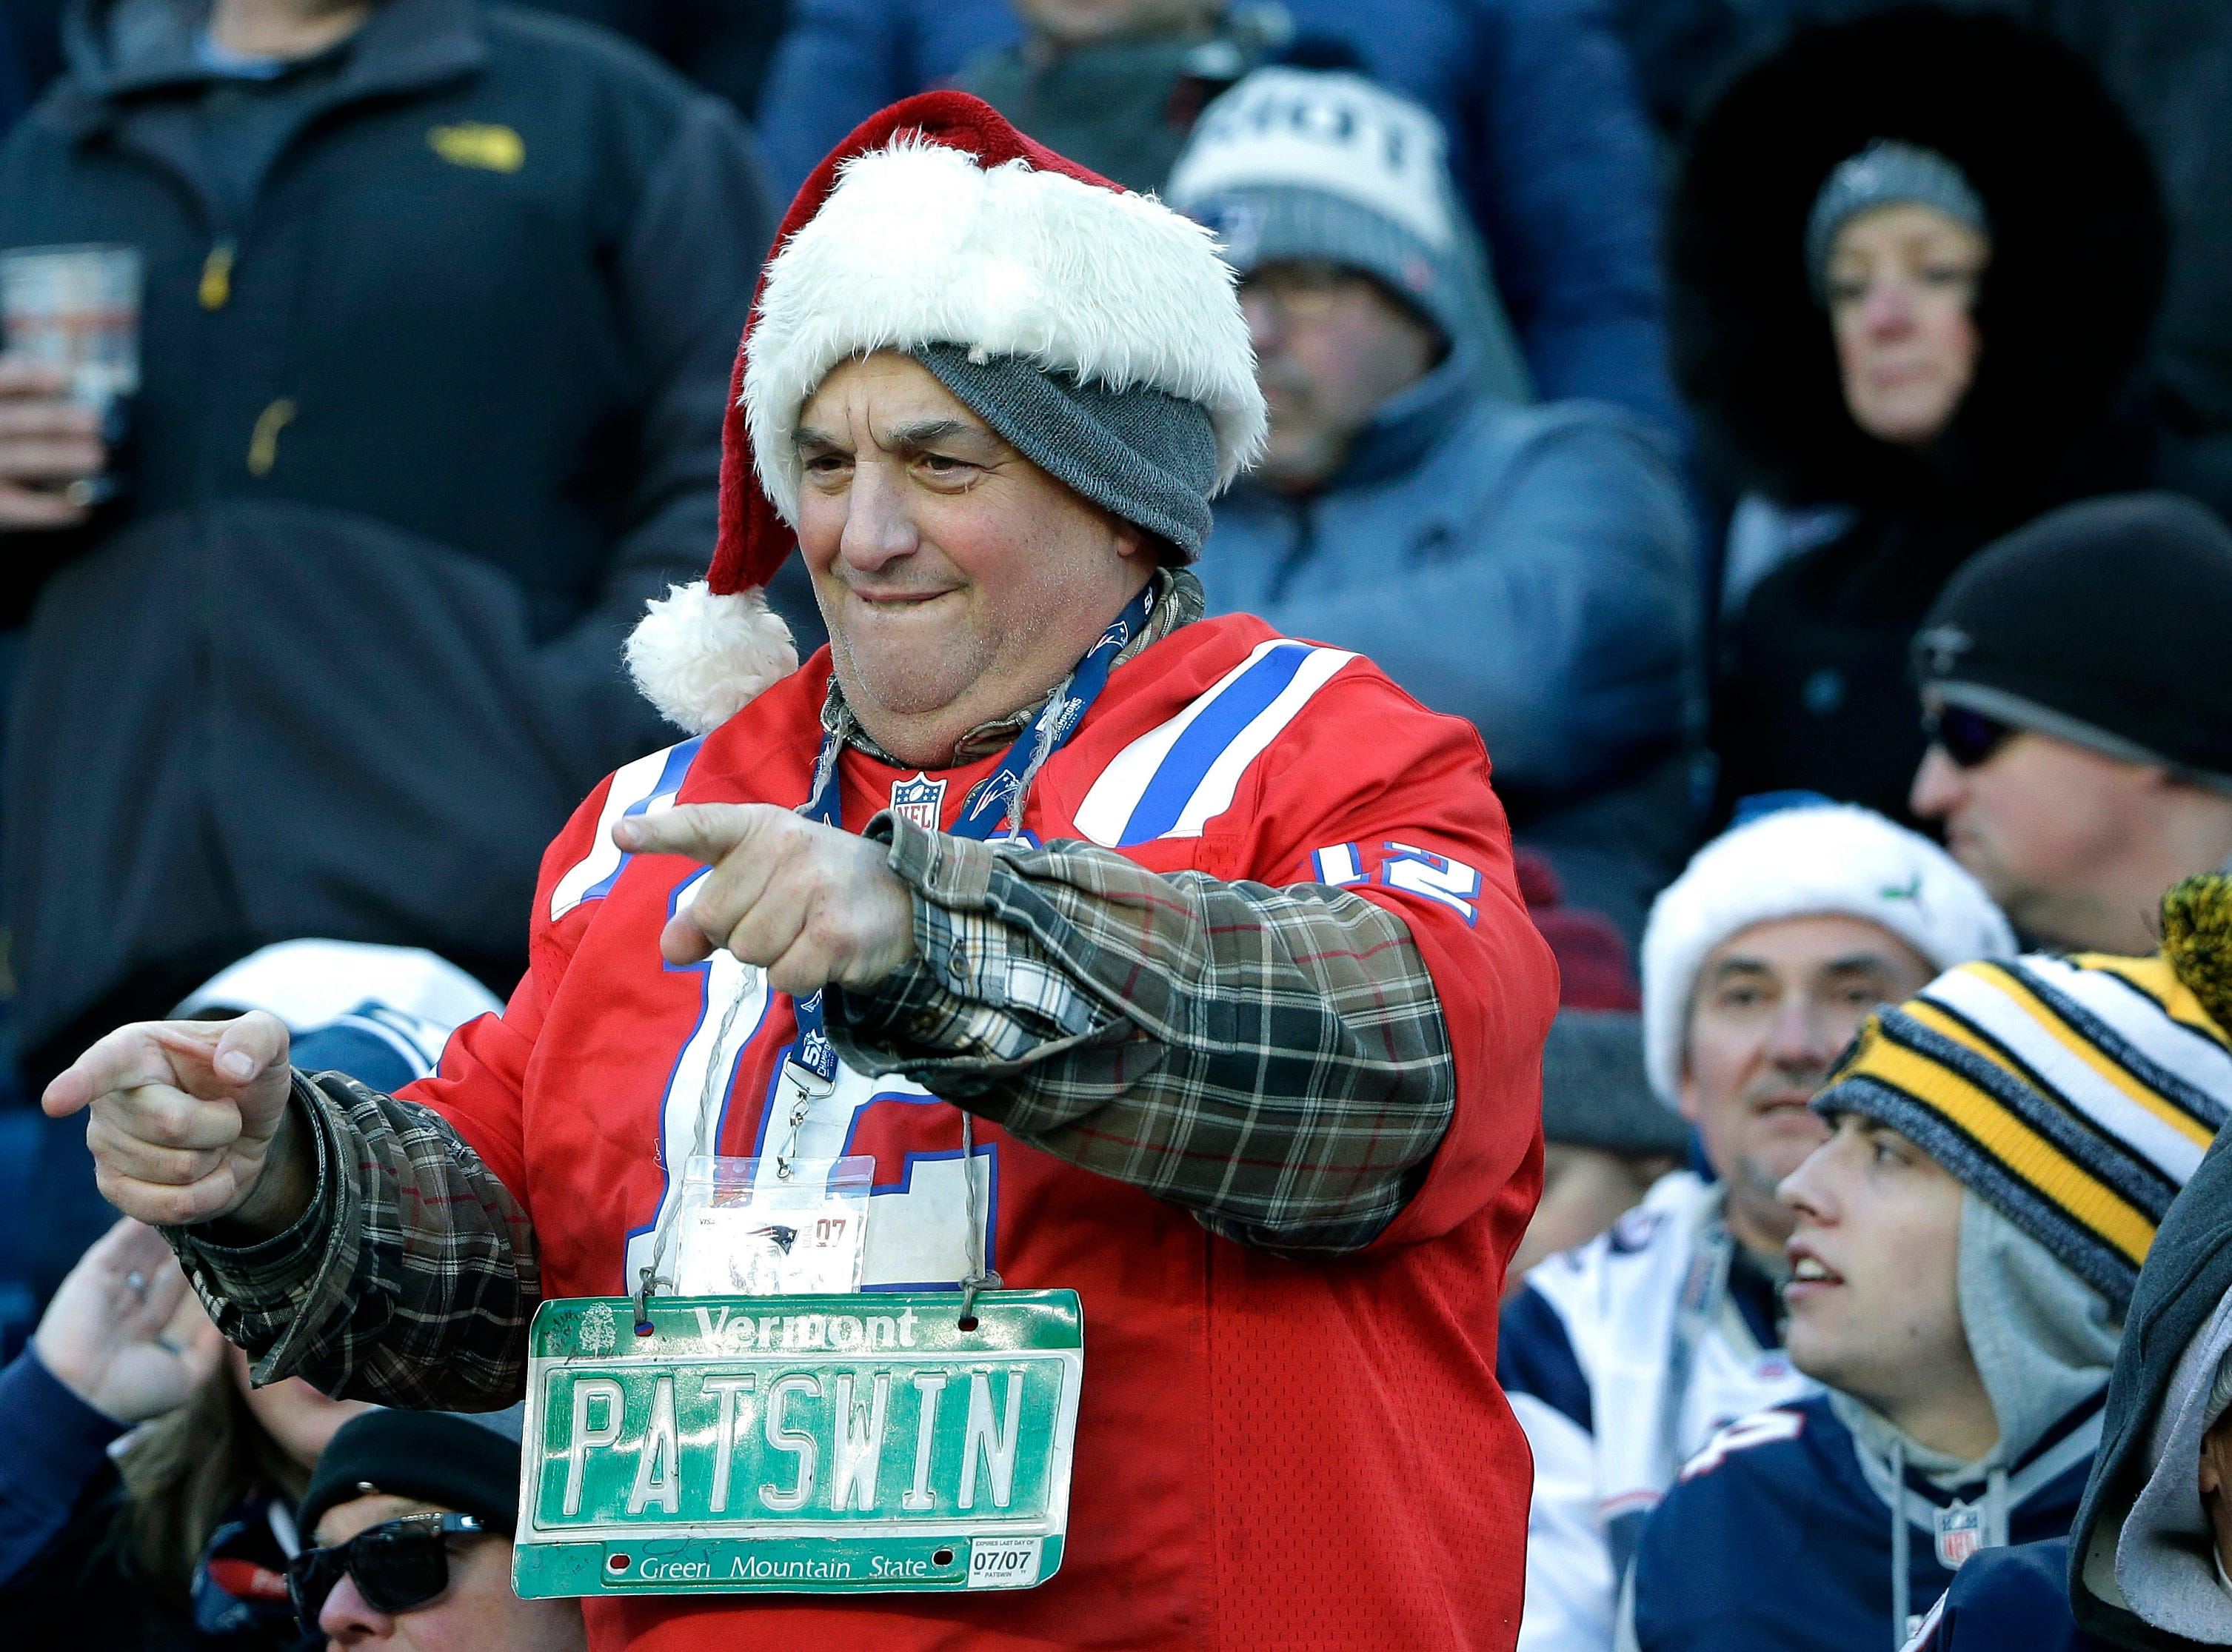 A New England Patriots fan wearing a Christmas outfit celebrates during the second half of an NFL football game between the Patriots and the Buffalo Bills, Sunday, Dec. 23, 2018, in Foxborough, Mass. (AP Photo/Steven Senne)